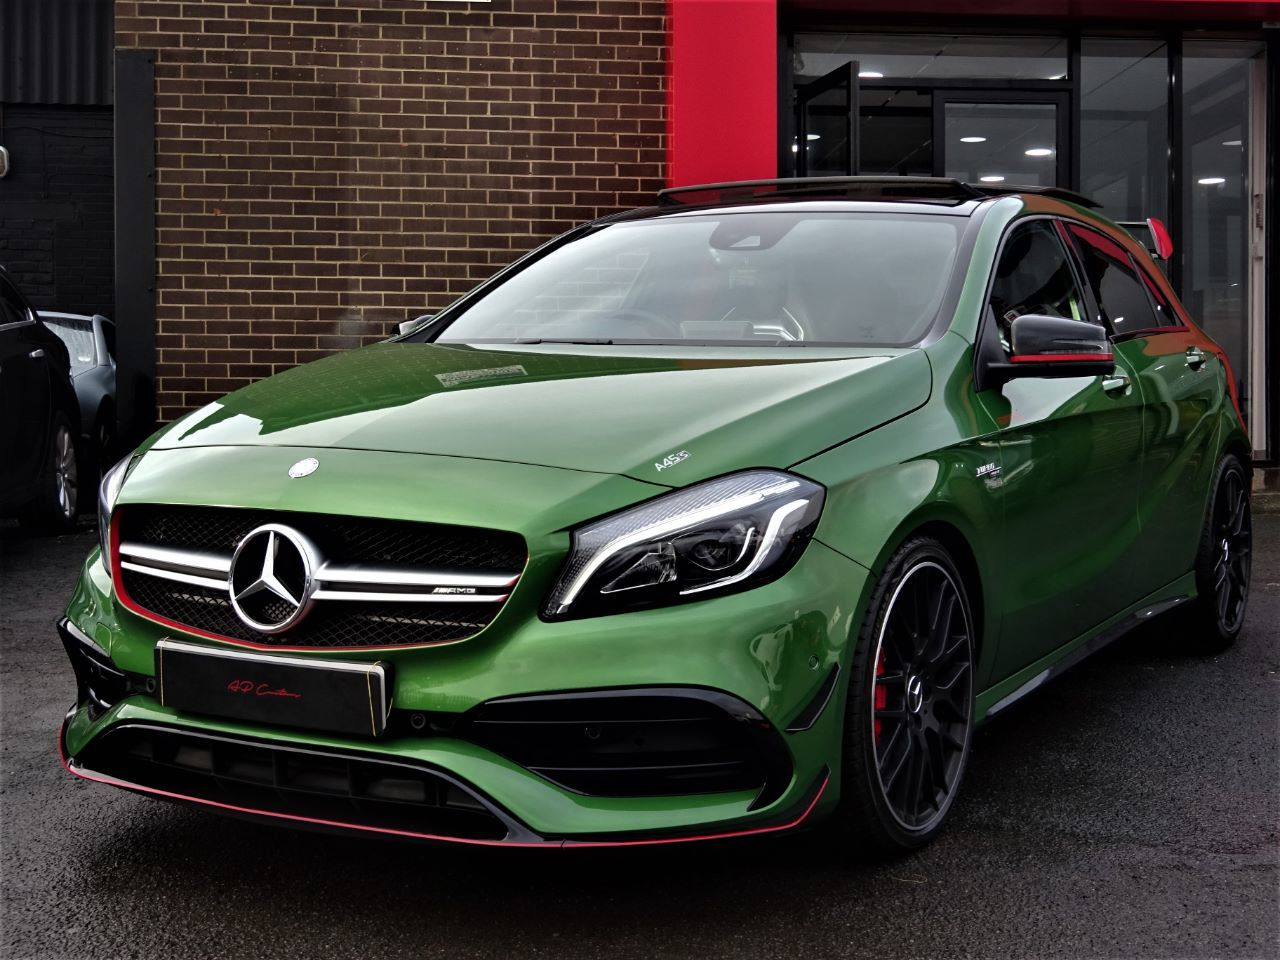 Mercedes A45 Green >> Used Mercedes-benz Cars Bradford, Second Hand Cars West Yorkshire - Autoprestige